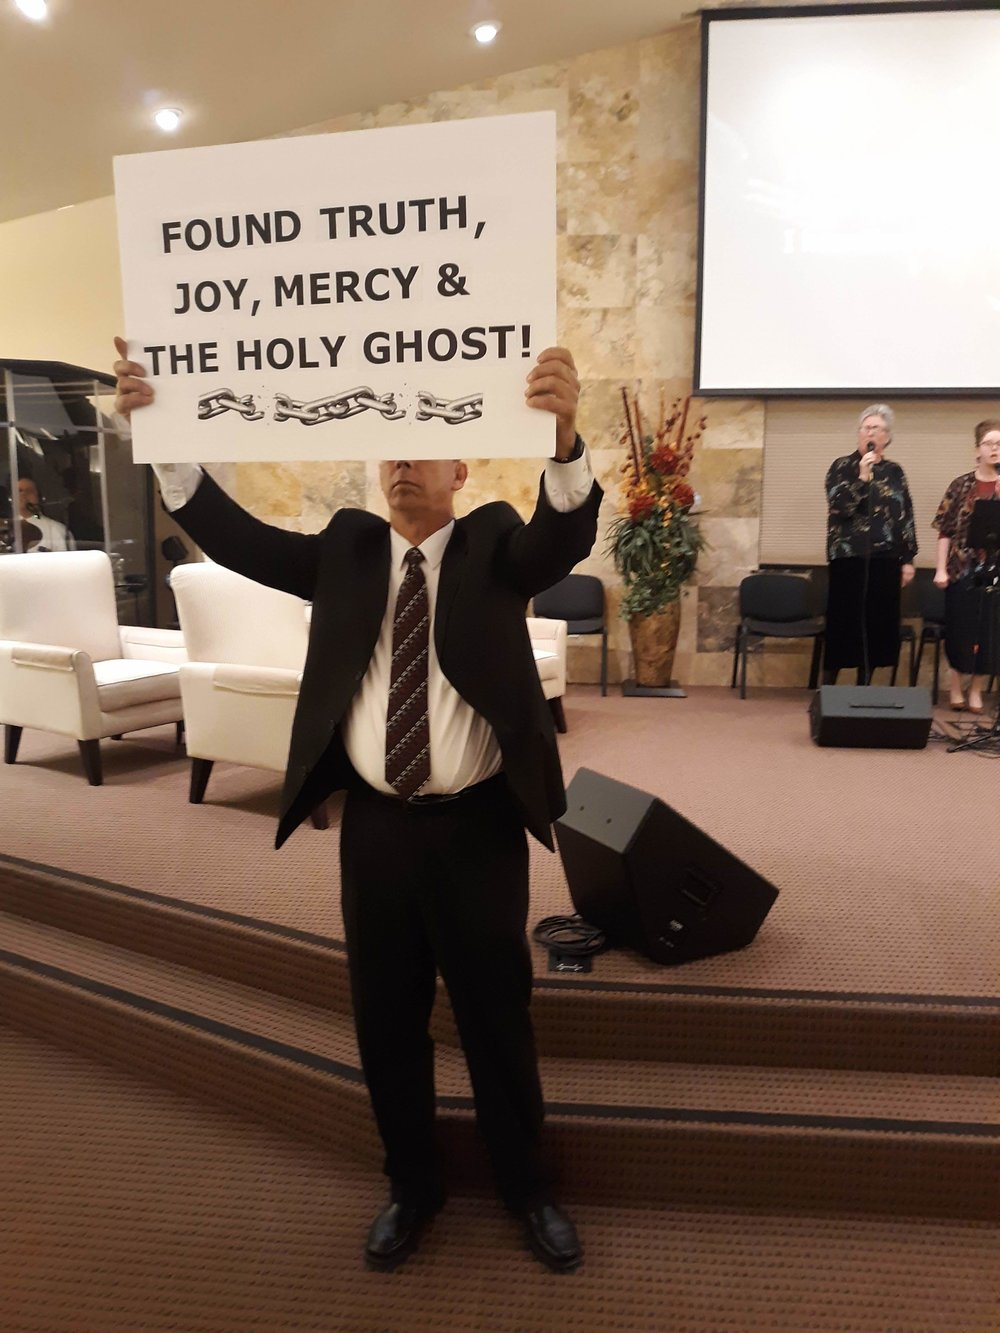 Bro. Mick after God filled him with the Holy Ghost, delivered him from Alcohol and drugs. Please see Bro. Mick's testimony on our testimony page.